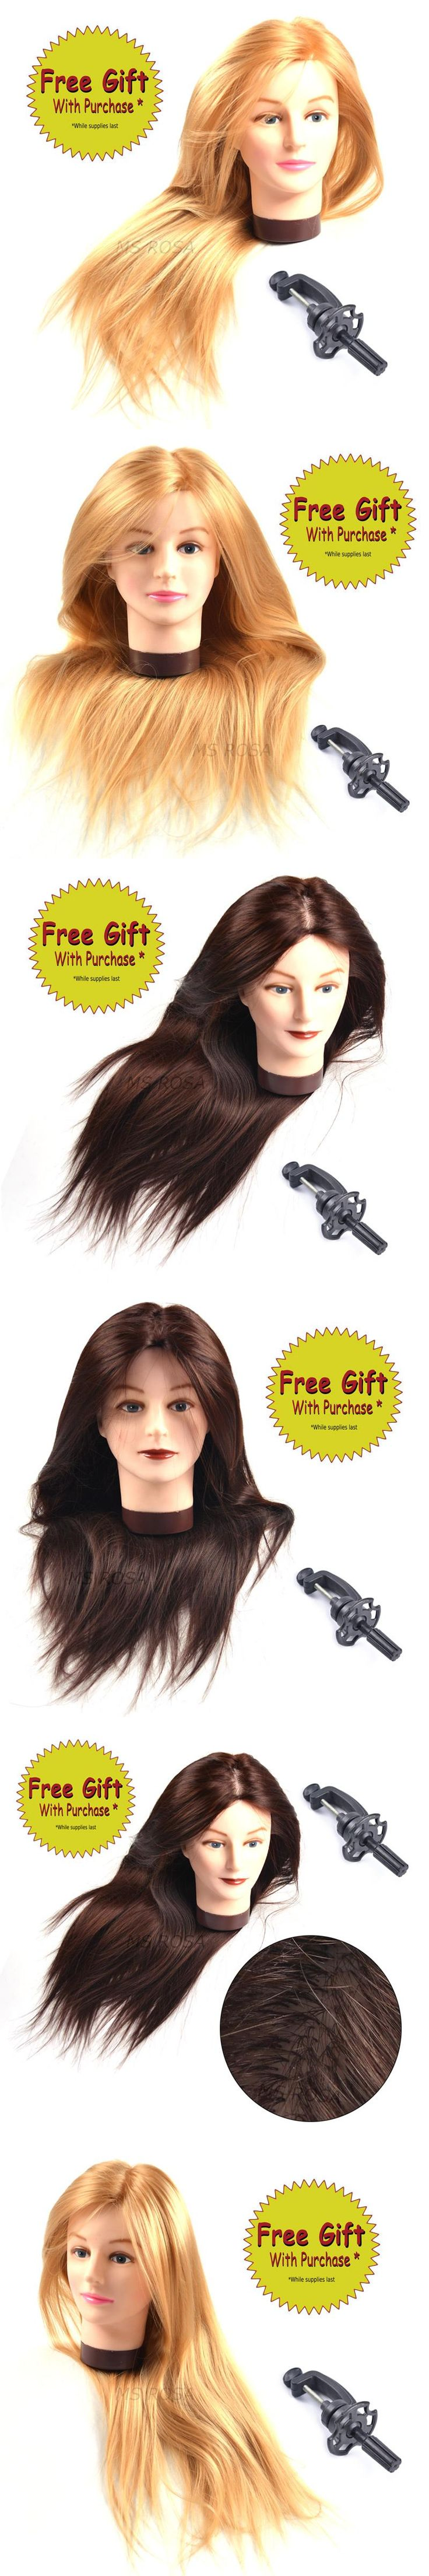 Synthetic Mannequin Head Female Hair Head Doll 22 Inches Mannequin Doll Head Hairdressing Training Heads Styling With Fiber